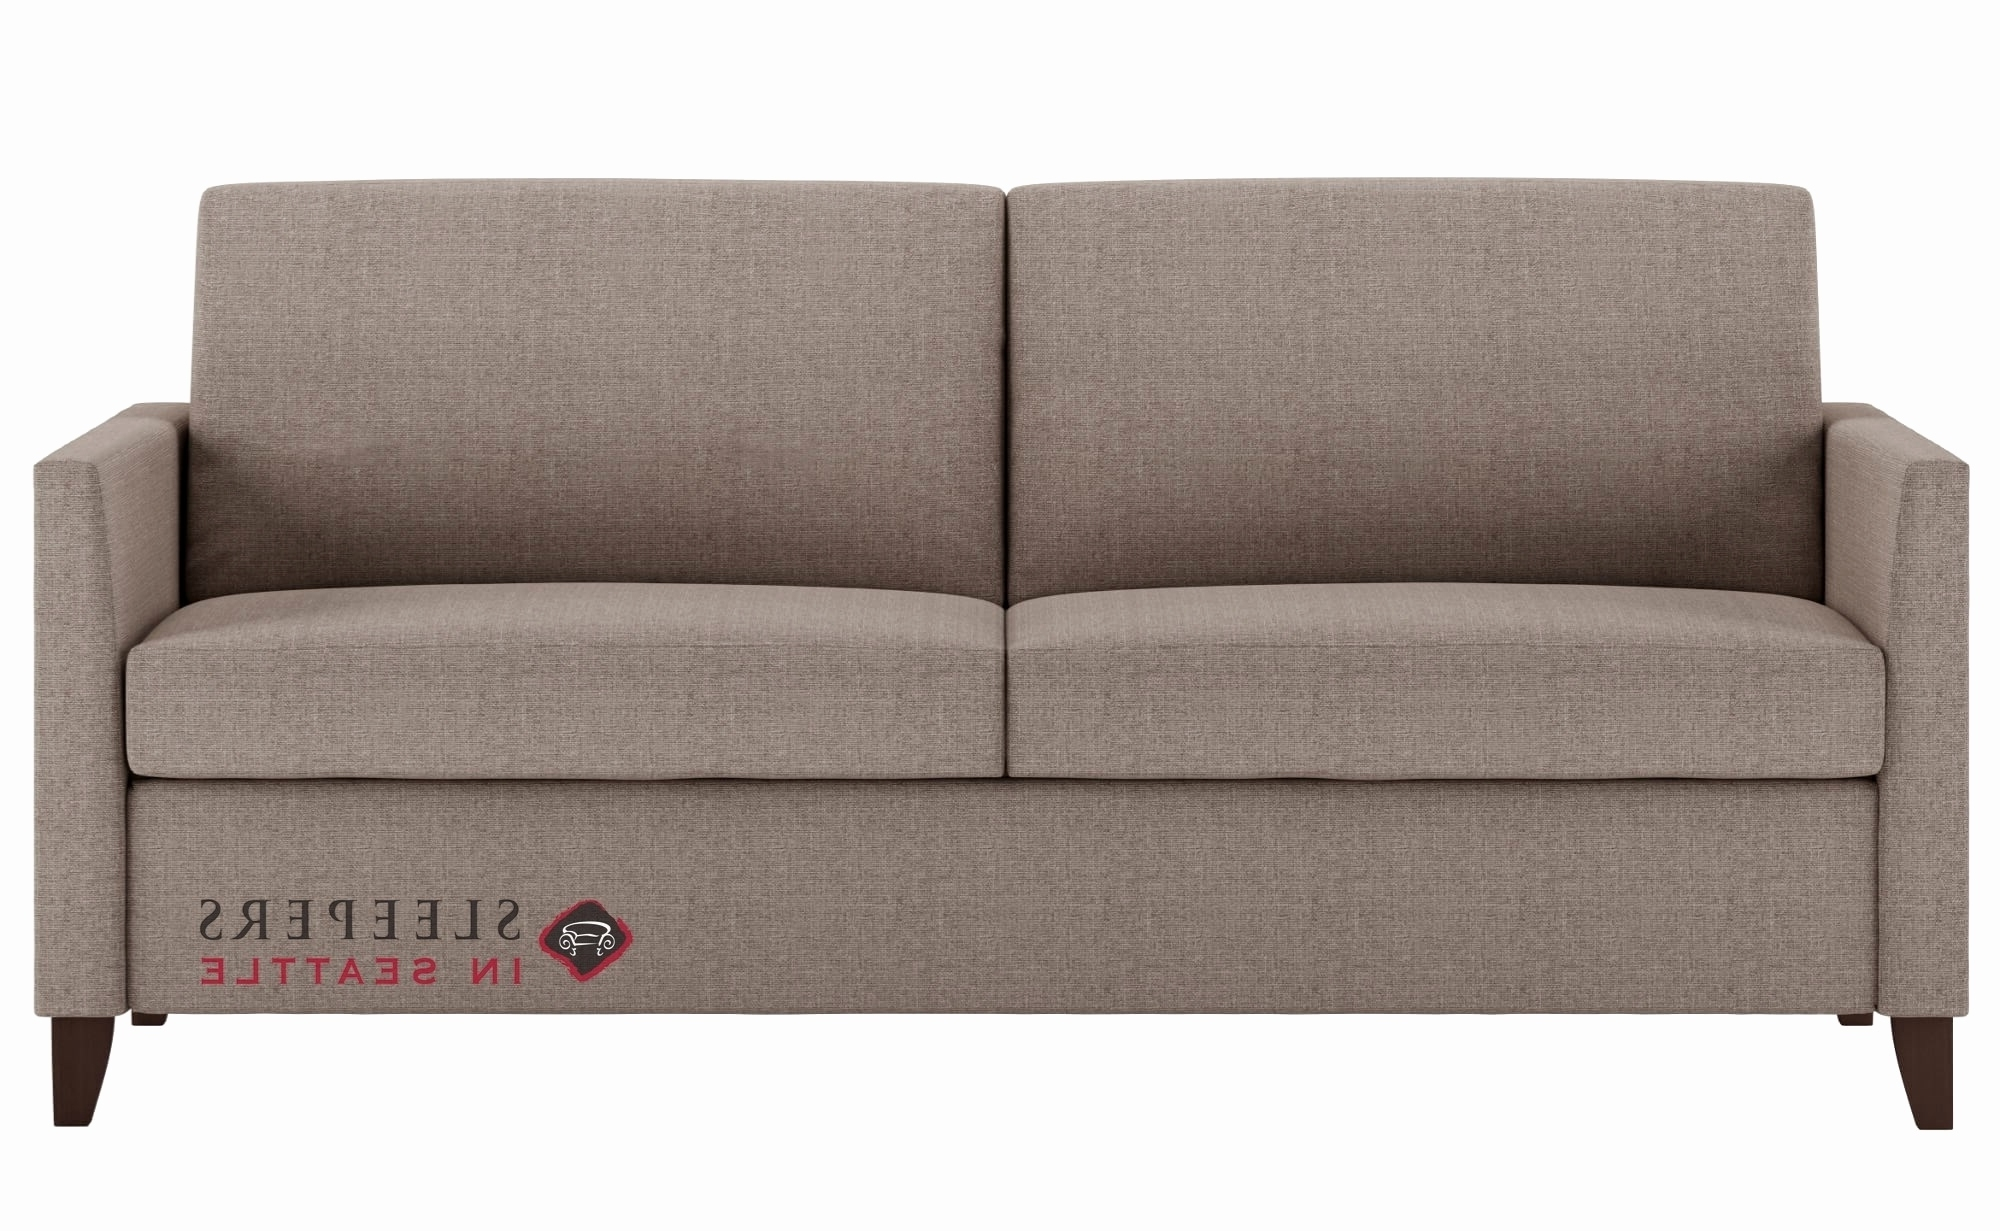 Sofa Bed Kijiji London Ontario Review Home Co